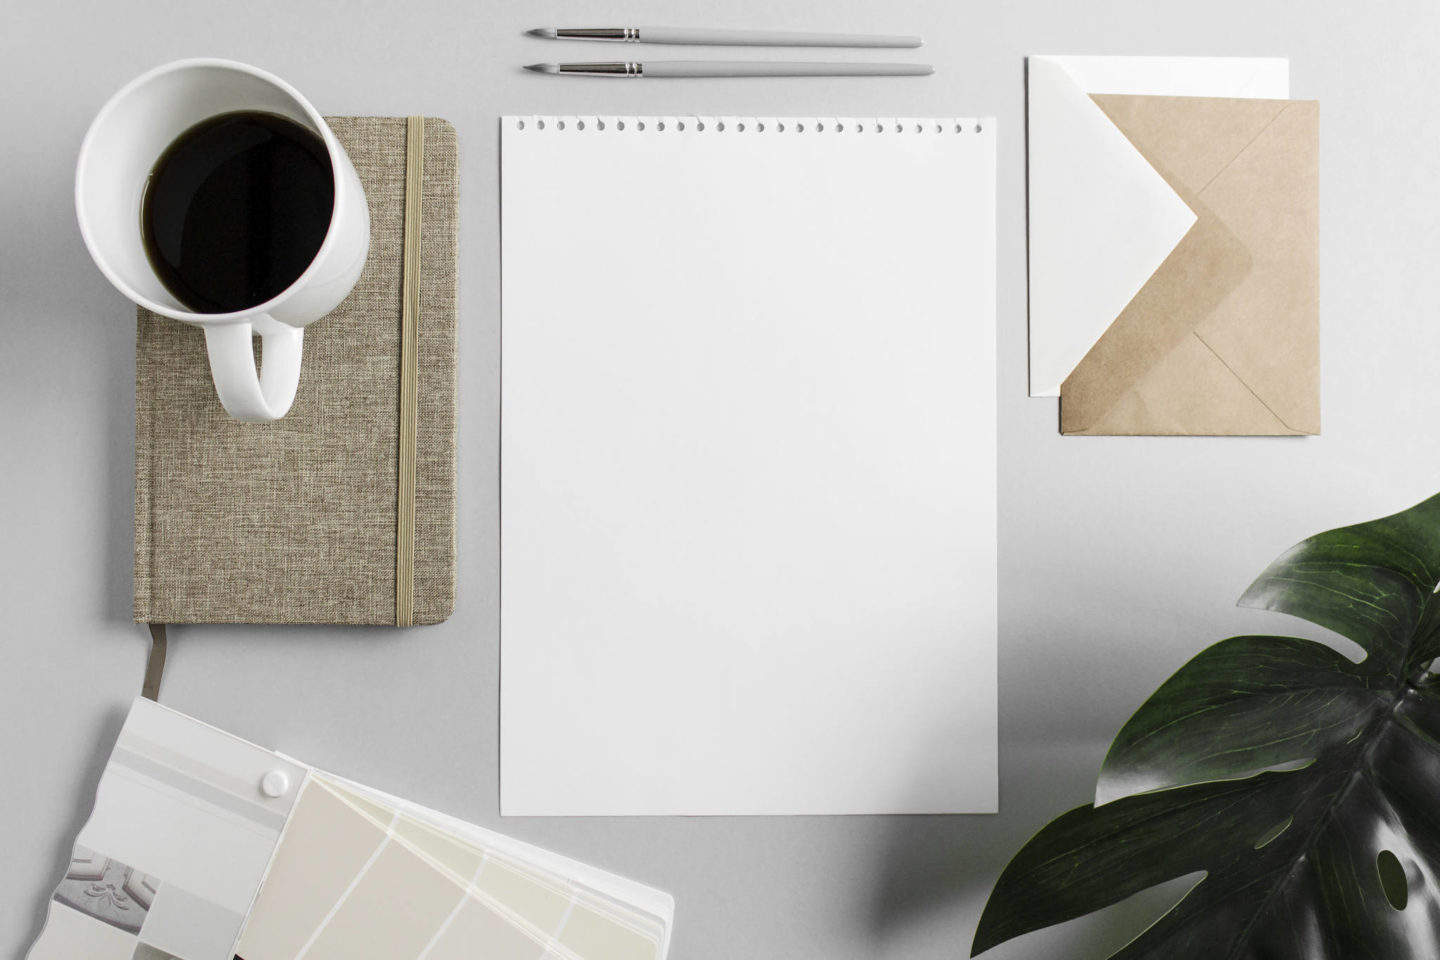 cup of coffee and notepad on desk